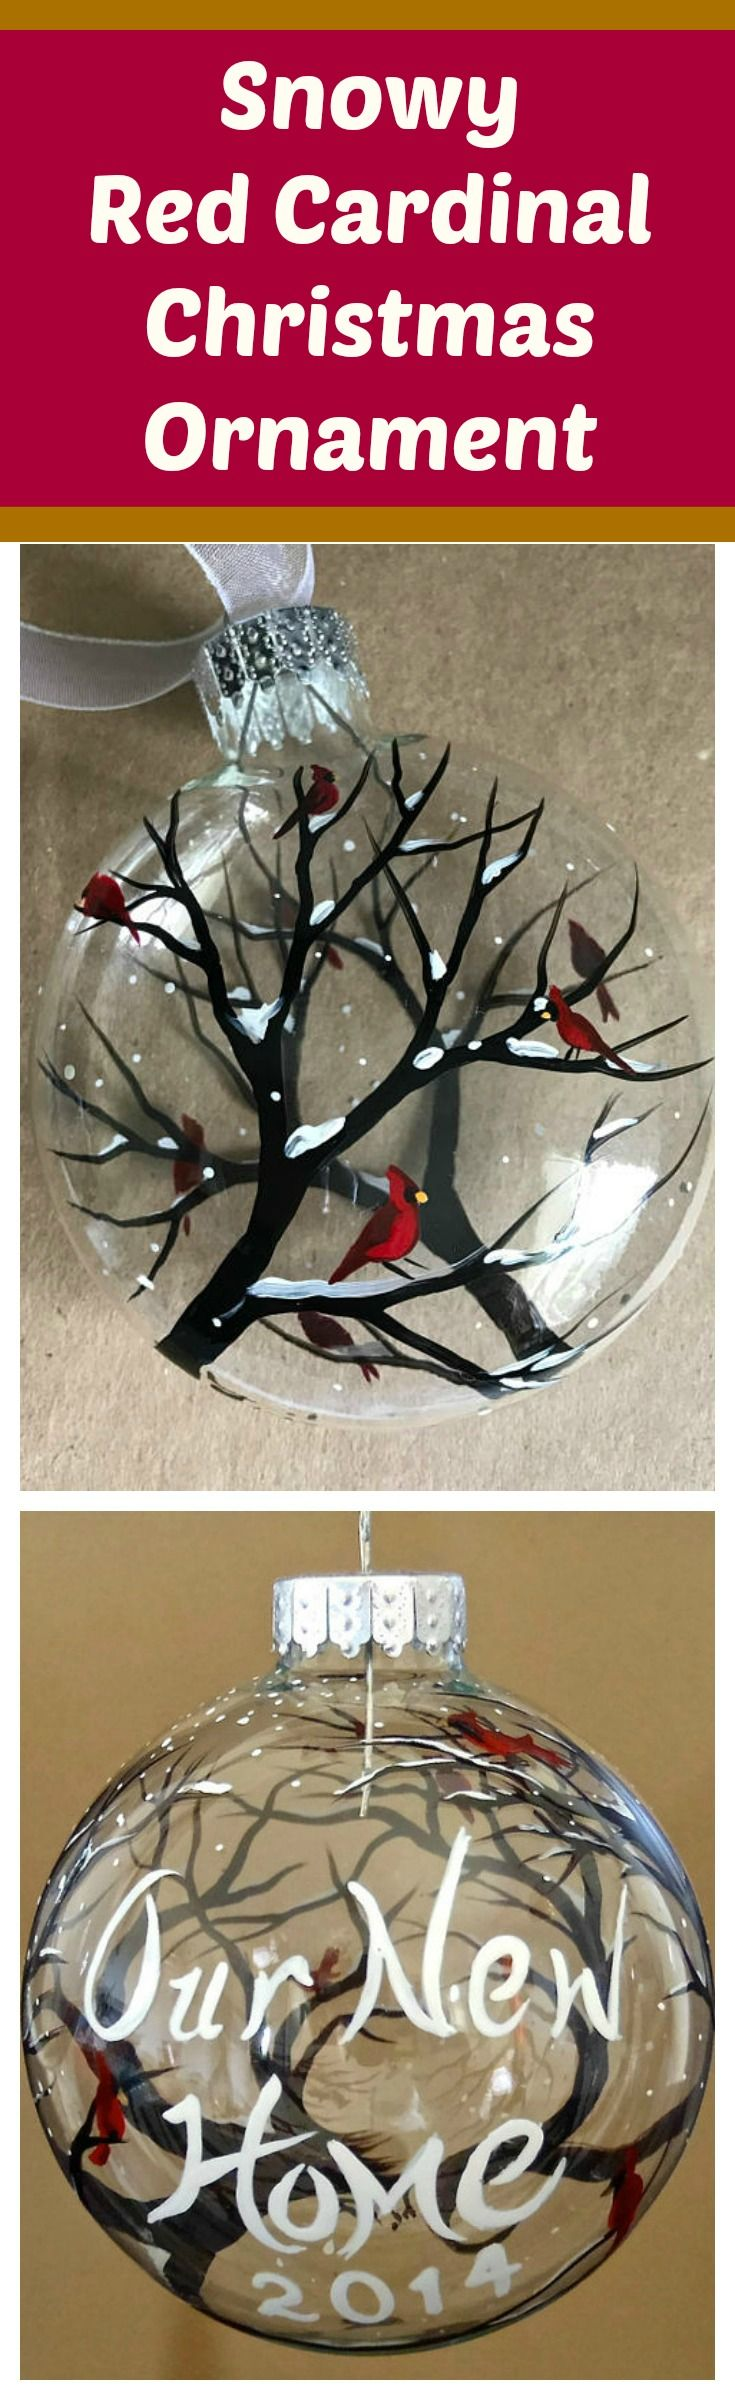 This little ornament was inspired by all the red cardinals that roam around my yard. I love watching them and they really are so stunning to look at, especially in Winter!  These ornaments make very special holiday gifts, housewarmings and even wedding presents! affiliate link